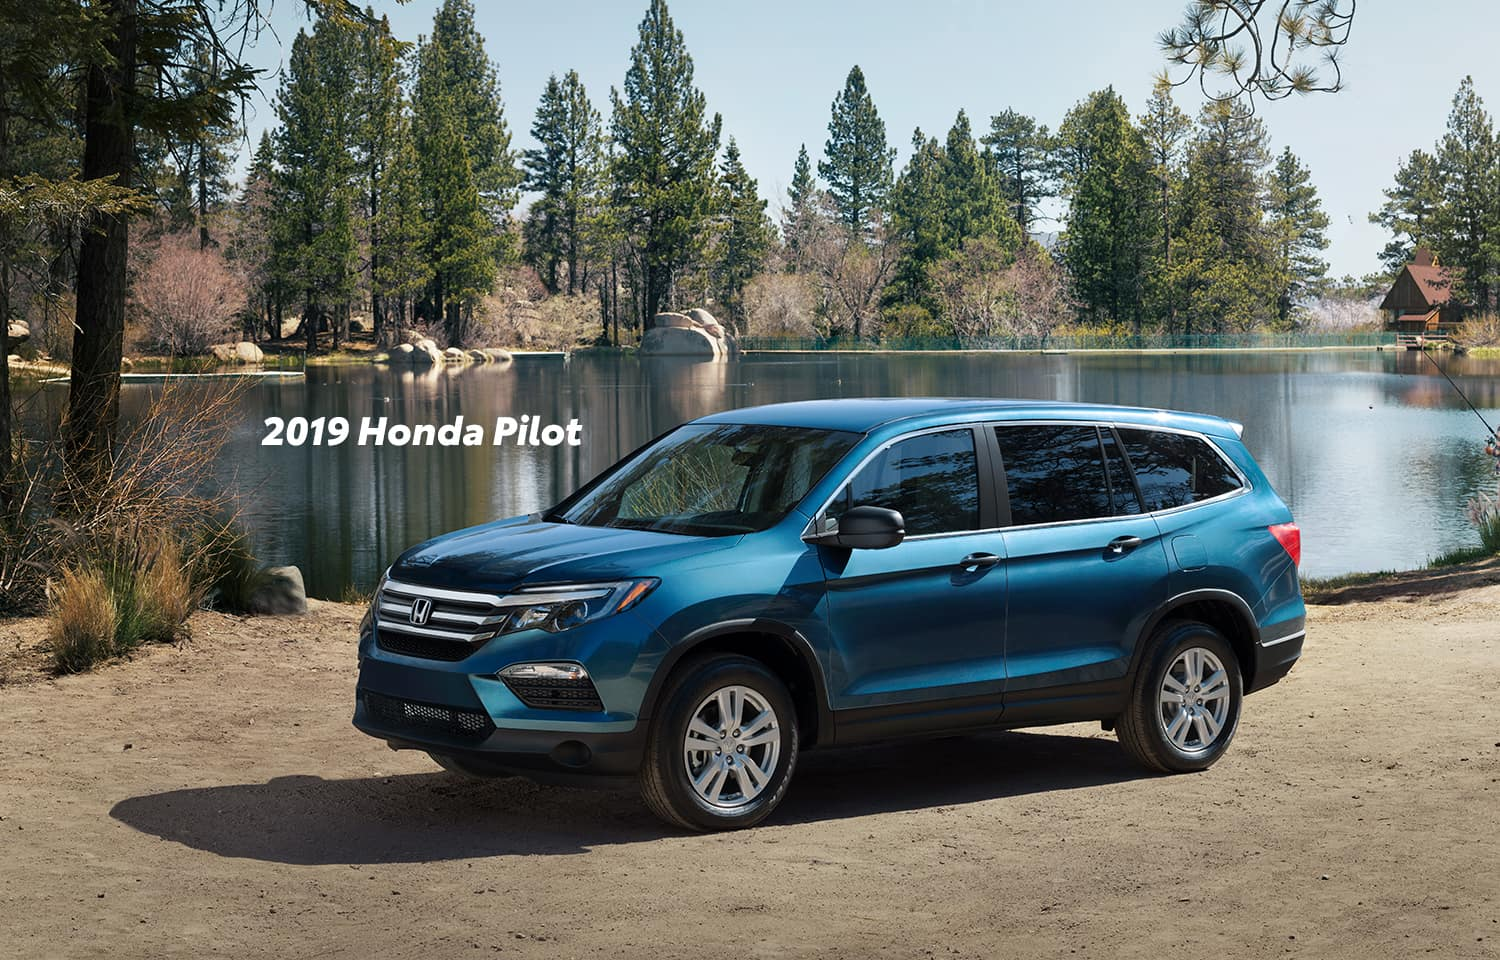 Comparison of the 2019 Pilot versus 2019 CR-V at Boch Honda of Norwood | Blue 2019 Honda Pilot Parked in the wood